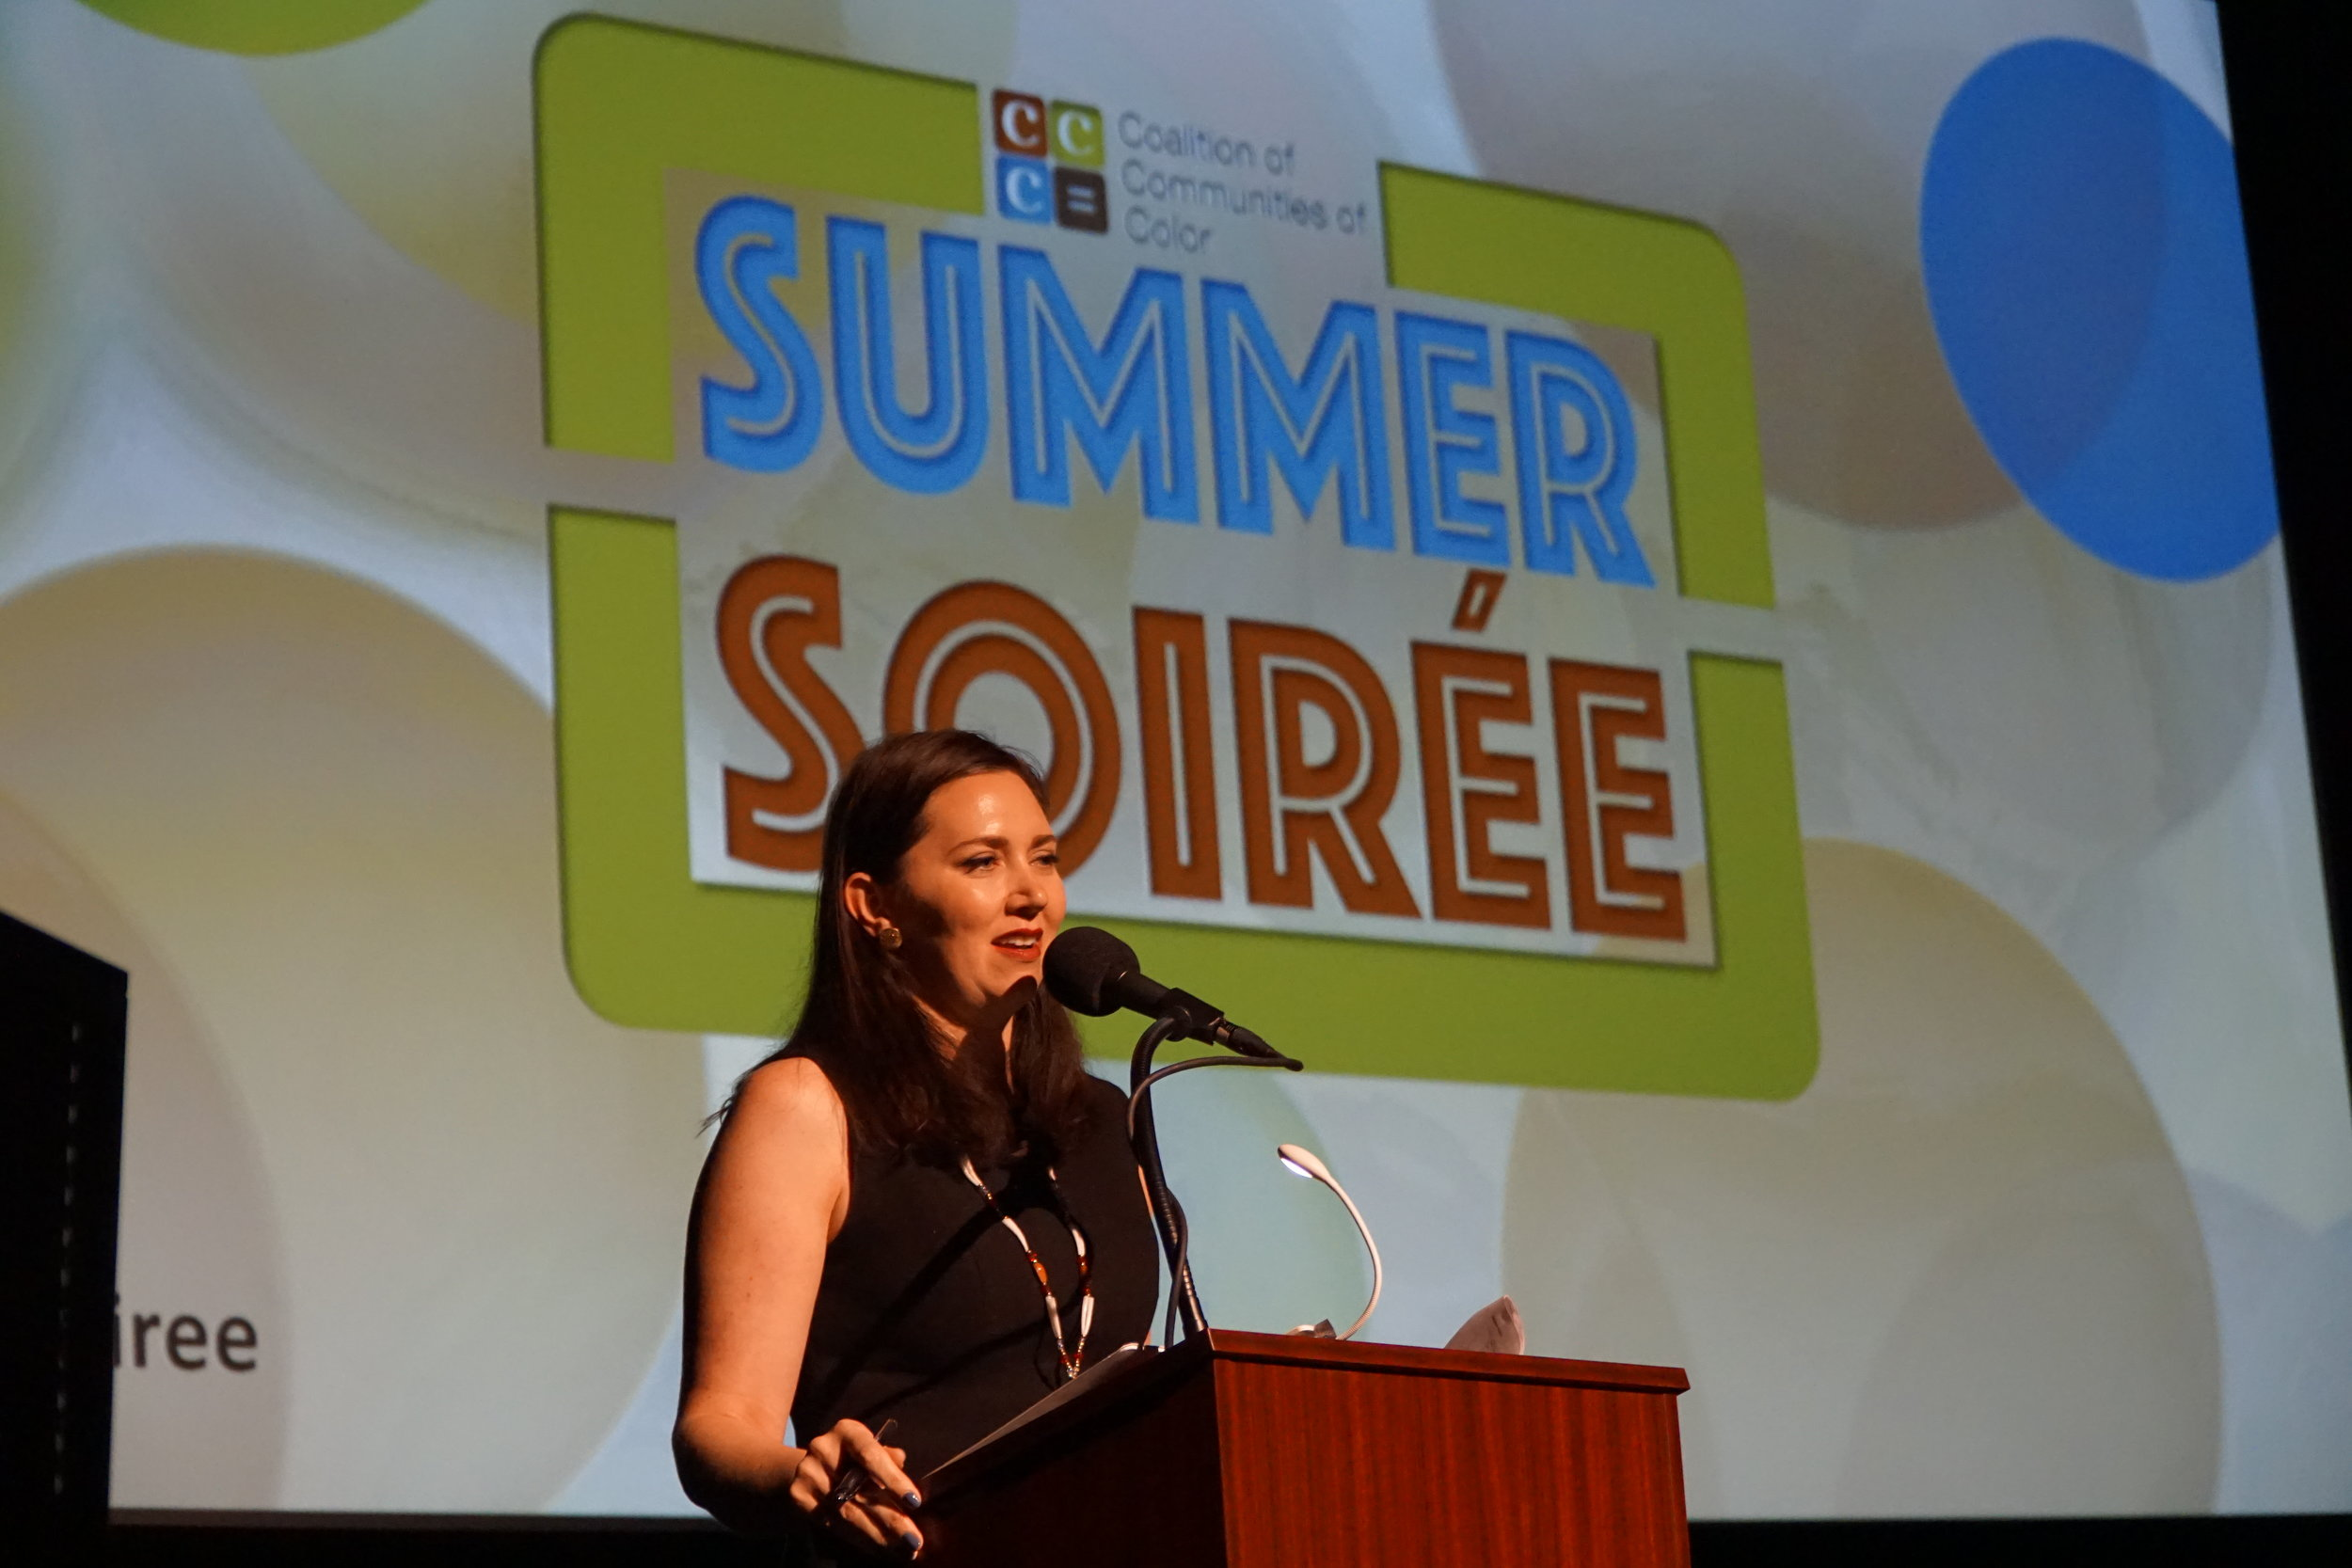 Nichole June Maher, President of Northwest Health Foundation & Co-founder of the CCC, was the emcee for the evening.